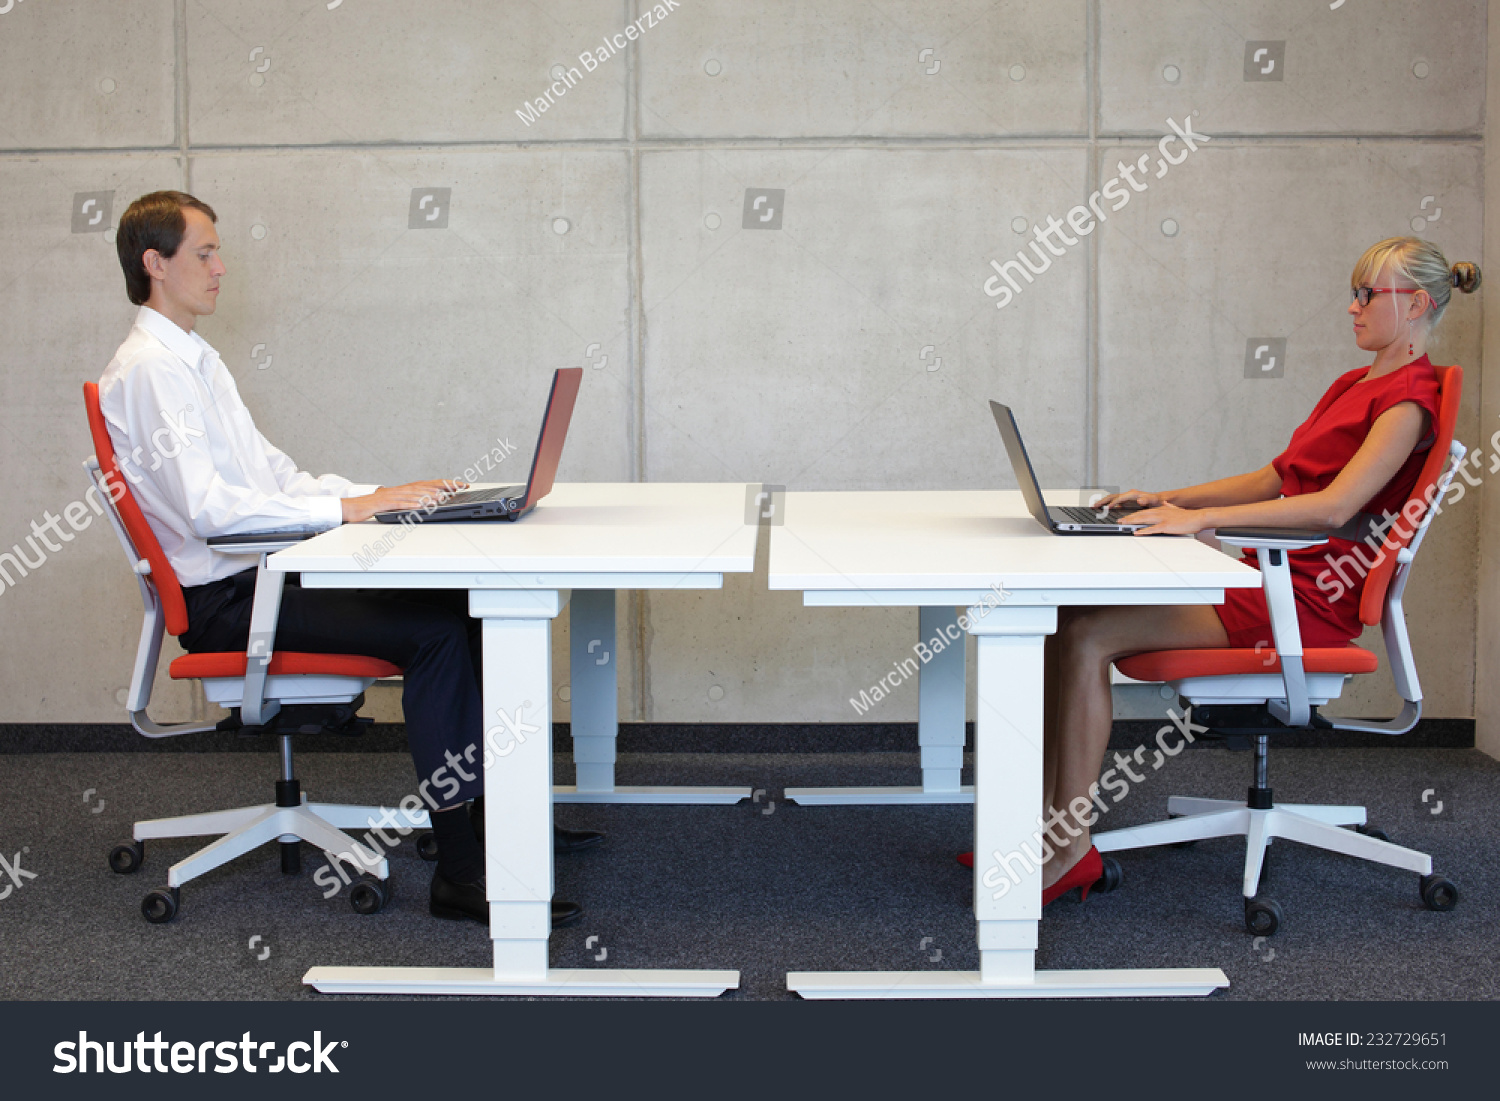 sitting posture on chair in office nursery rocking wayfair business man woman correct stock photo